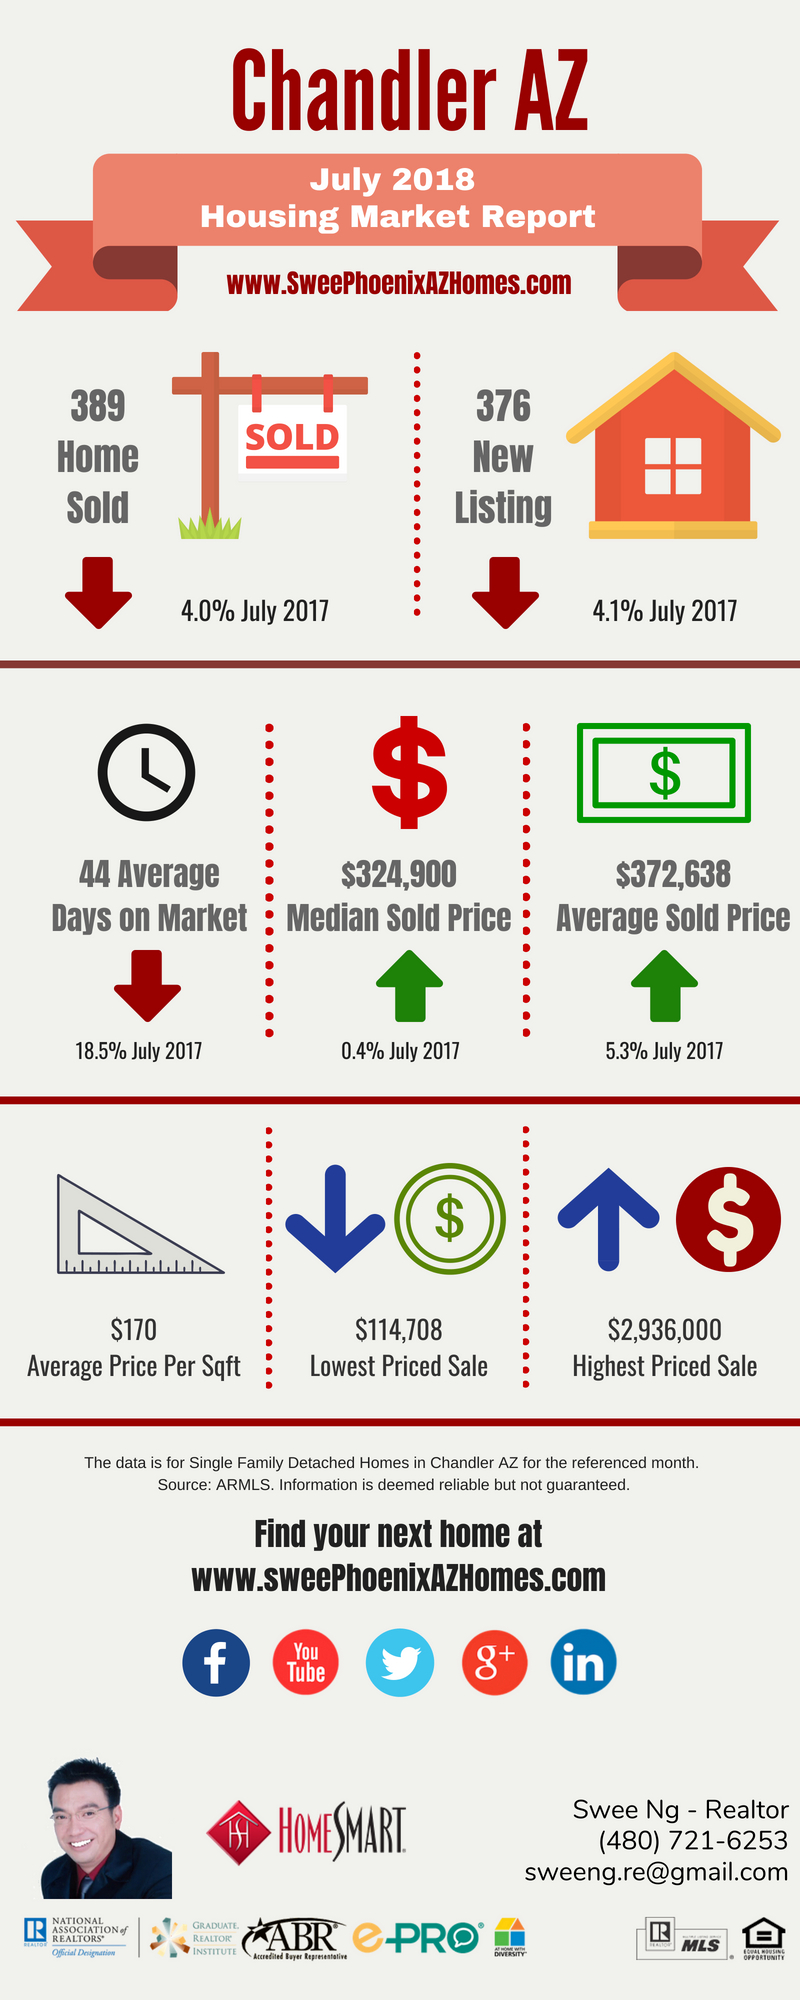 Chandler AZ Housing Market Update July 2018 by Swee Ng, House Value and Real Estate Listings